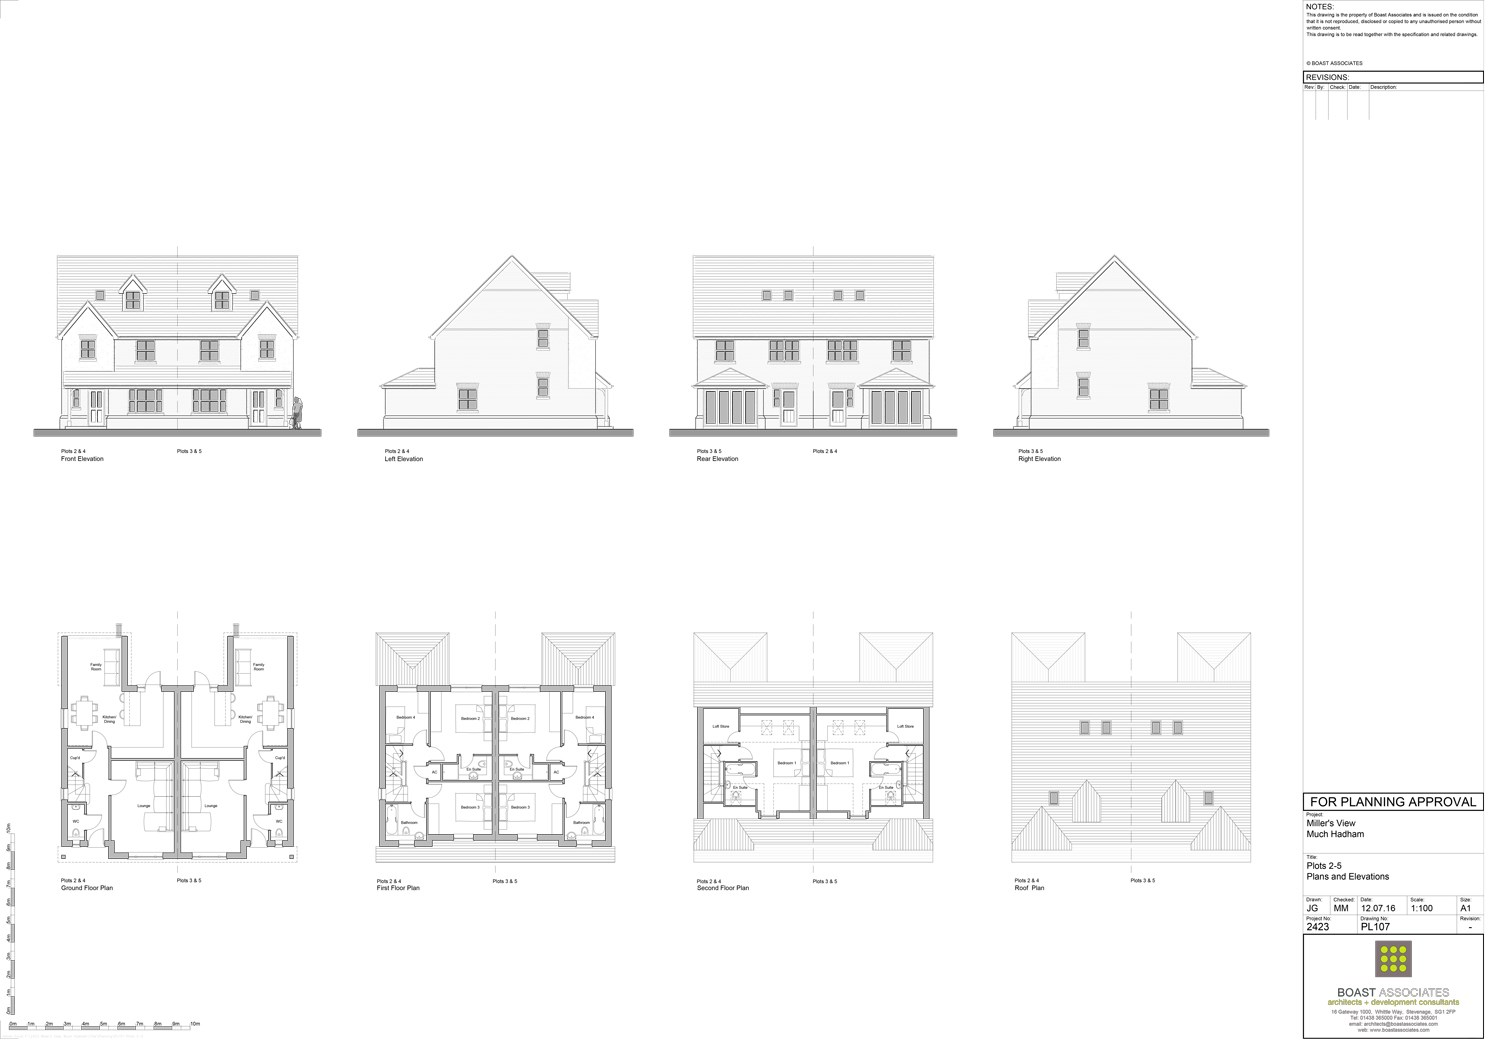 2423-pl107-plots-2-5-plans-and-elevations.jpg